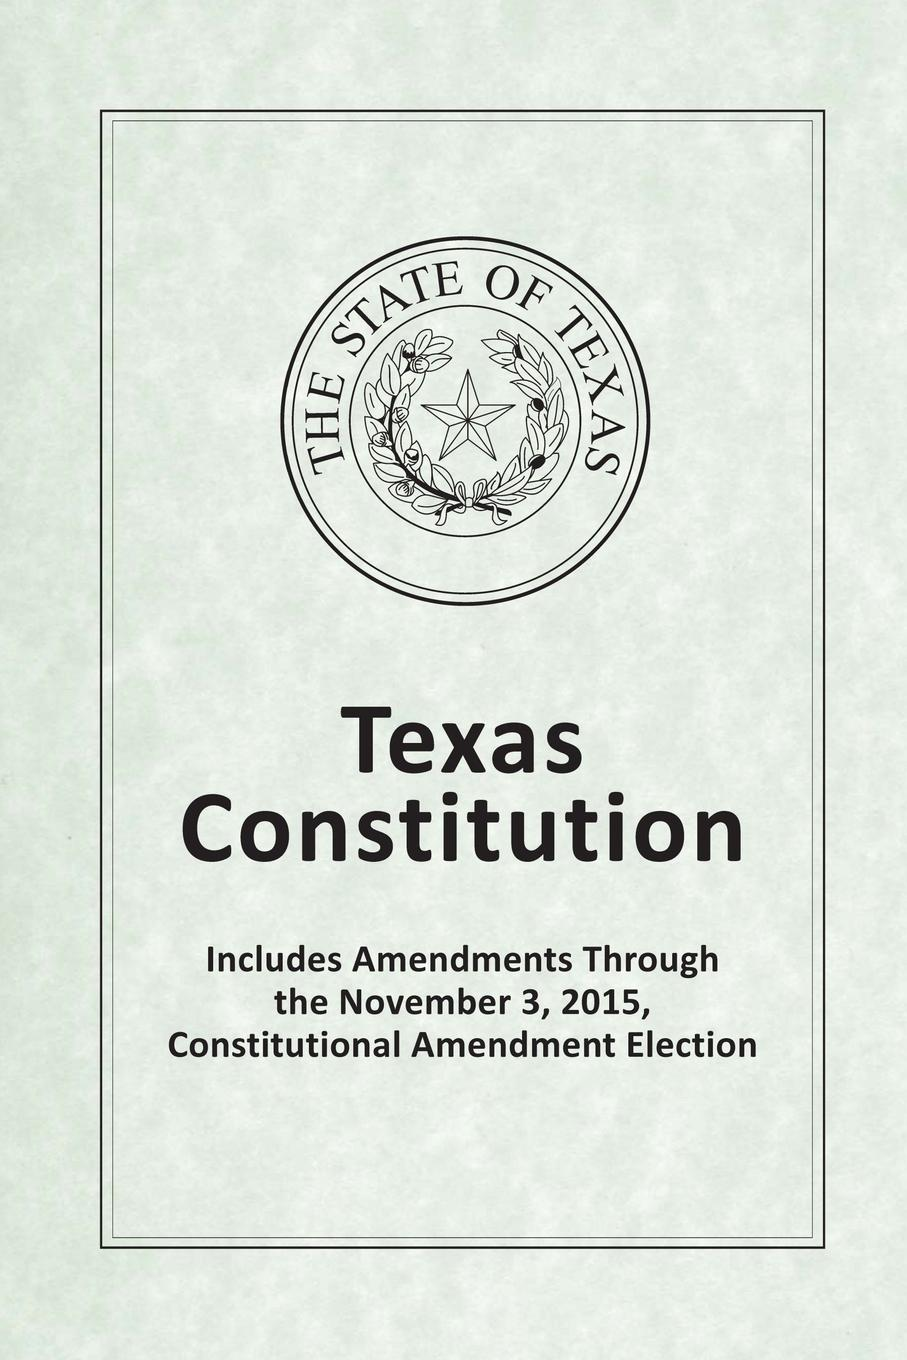 Texas Legislative Council Texas Constitution - Includes Amendments Through the November 3, 2015, Constitutional Amendment Election цена